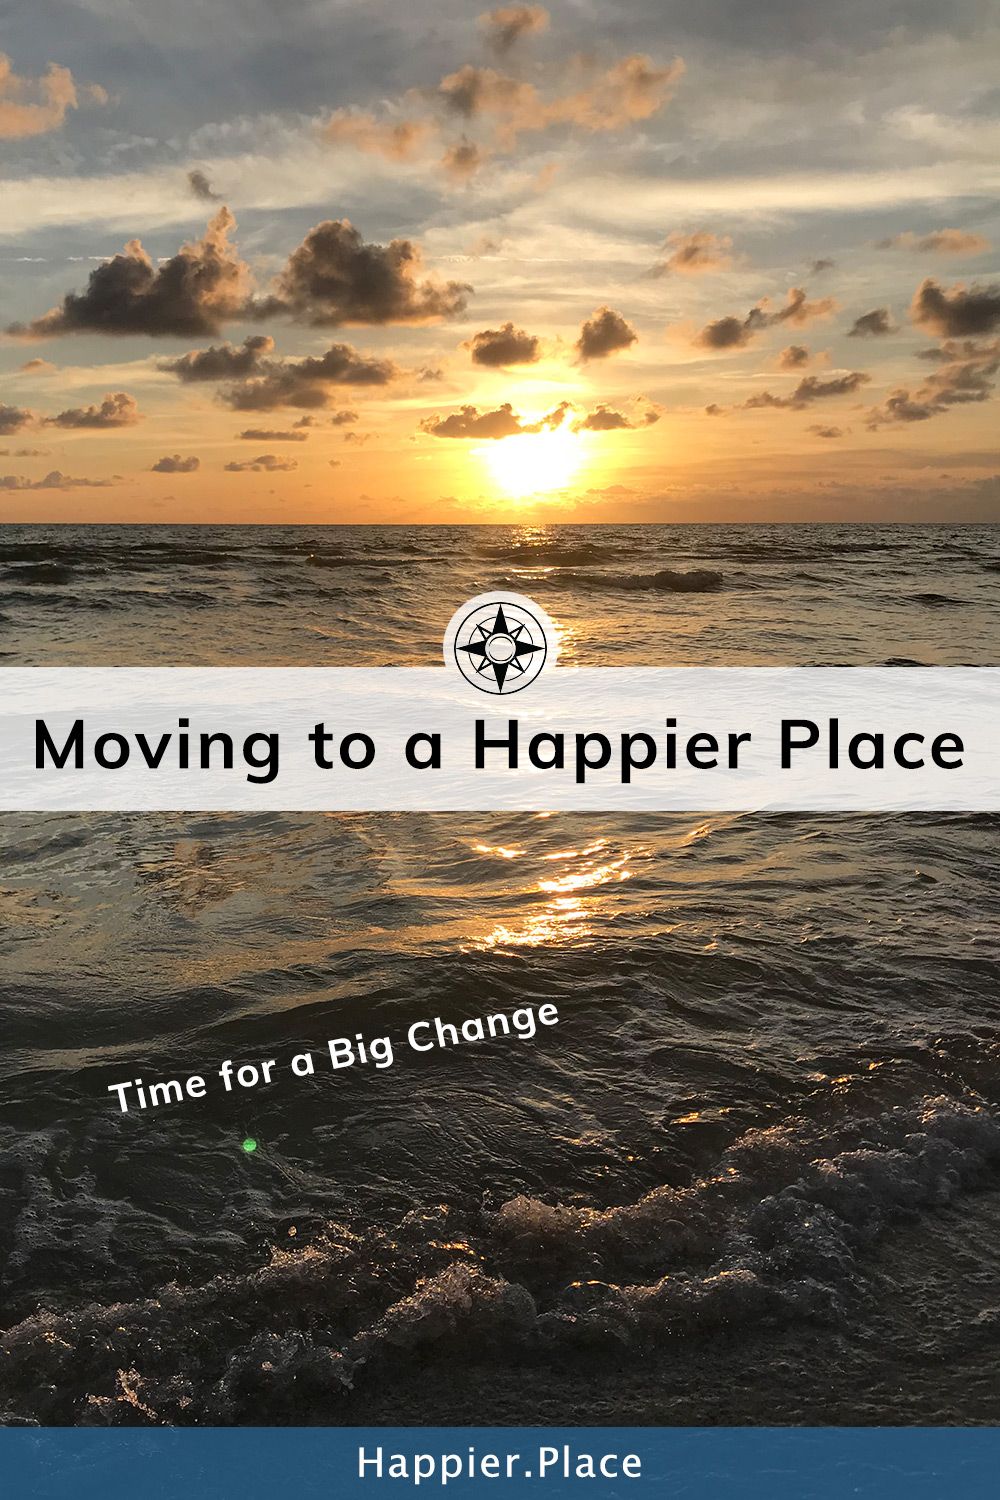 Time for a Big Change: Moving to a Happier Place